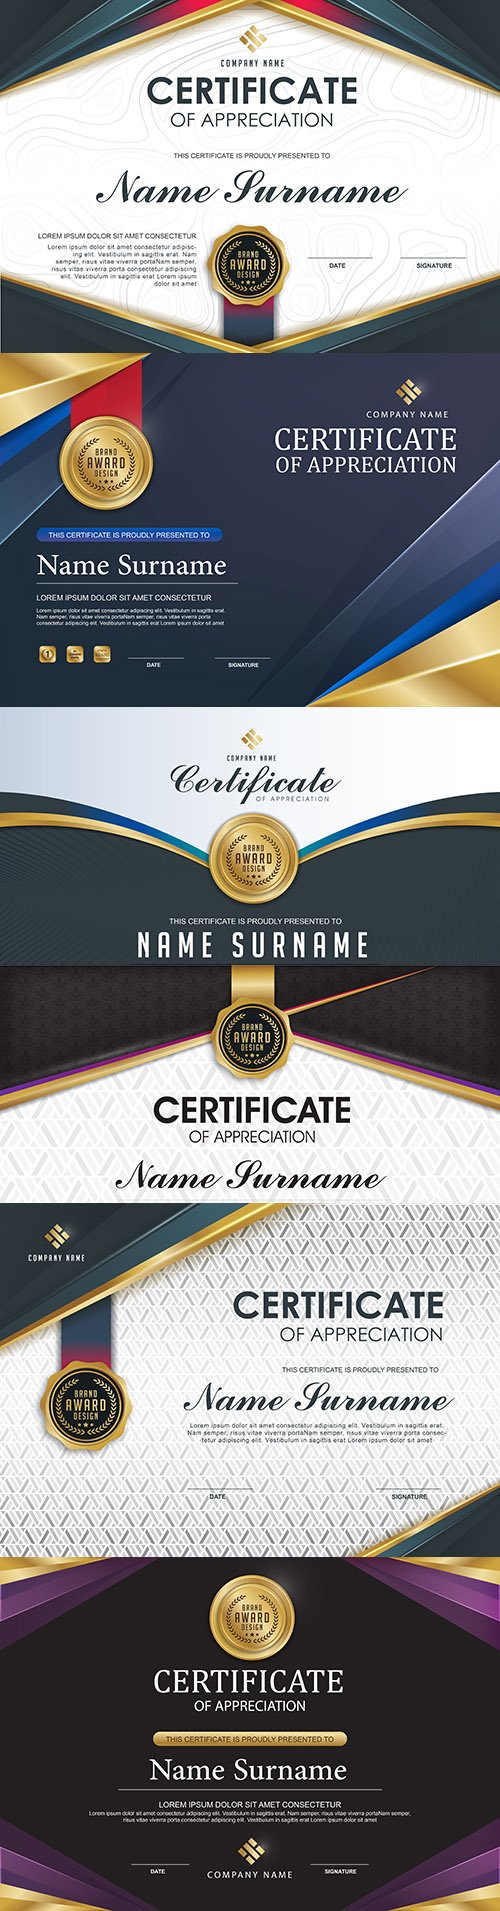 Luxury certificate of gratitude template award design 2